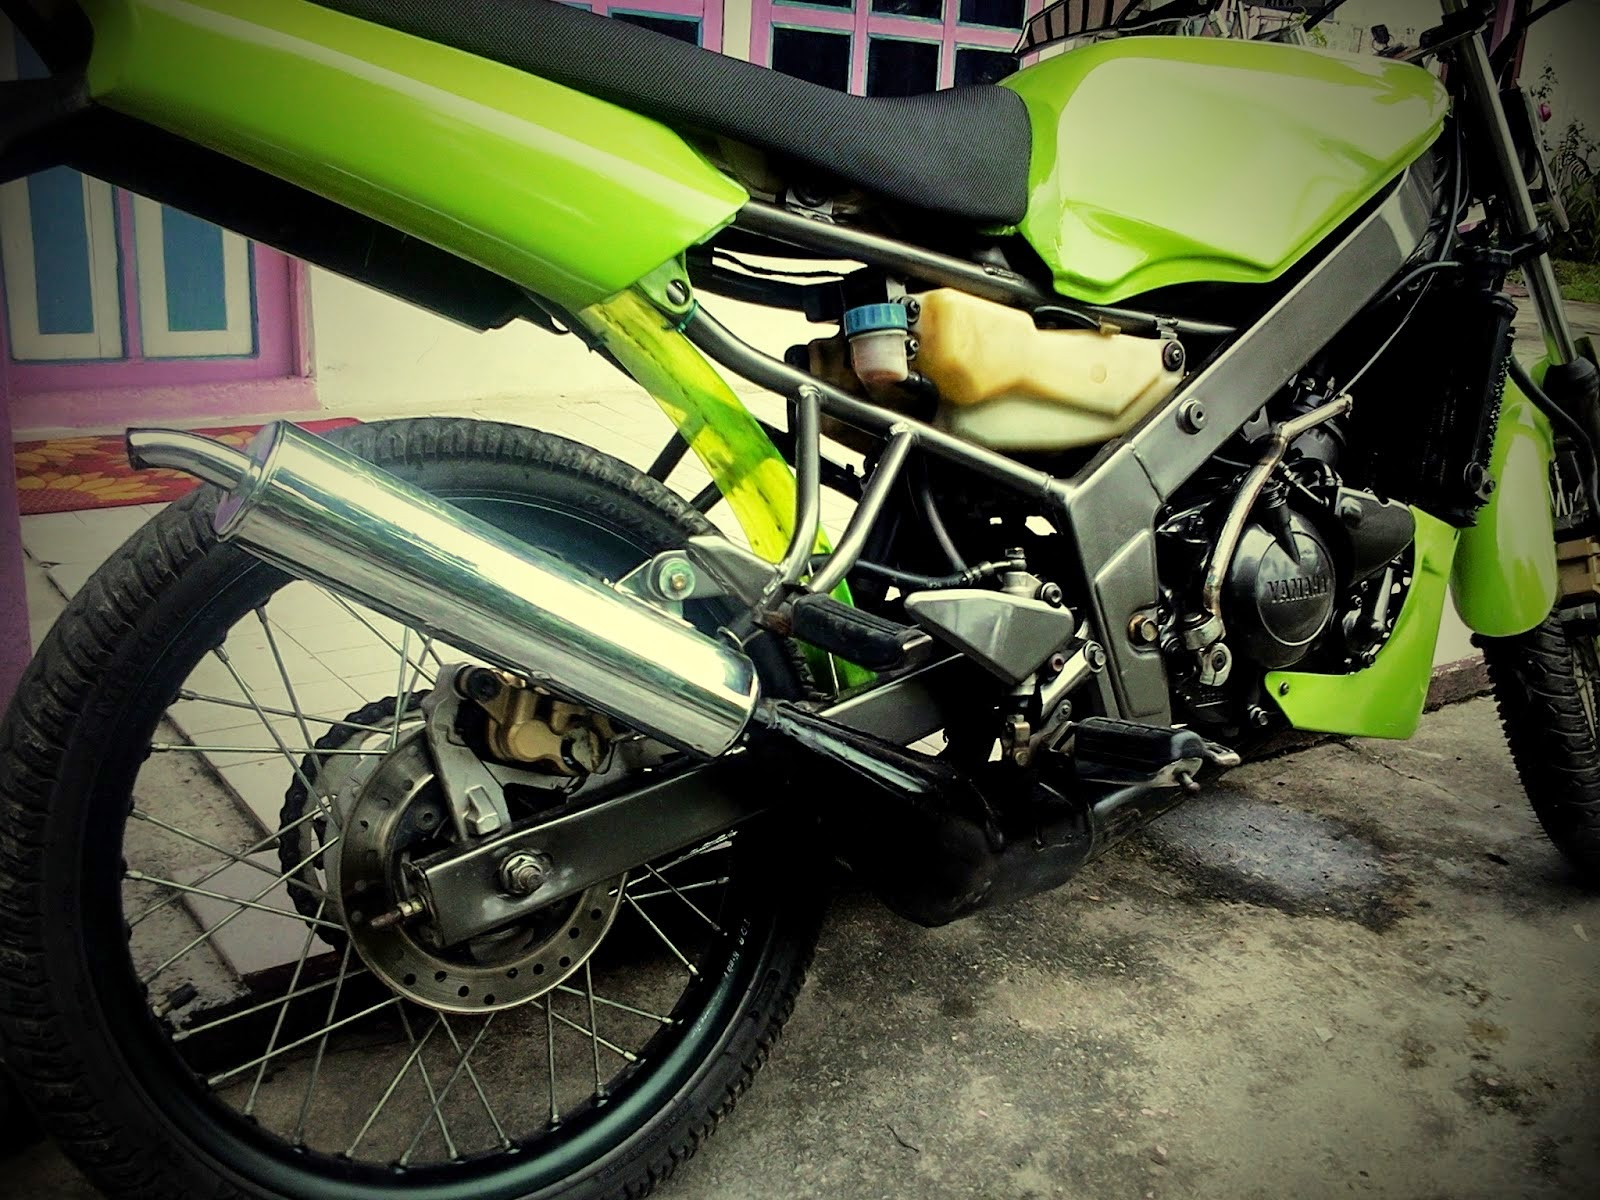 Cb150r Modifikasi Ringan